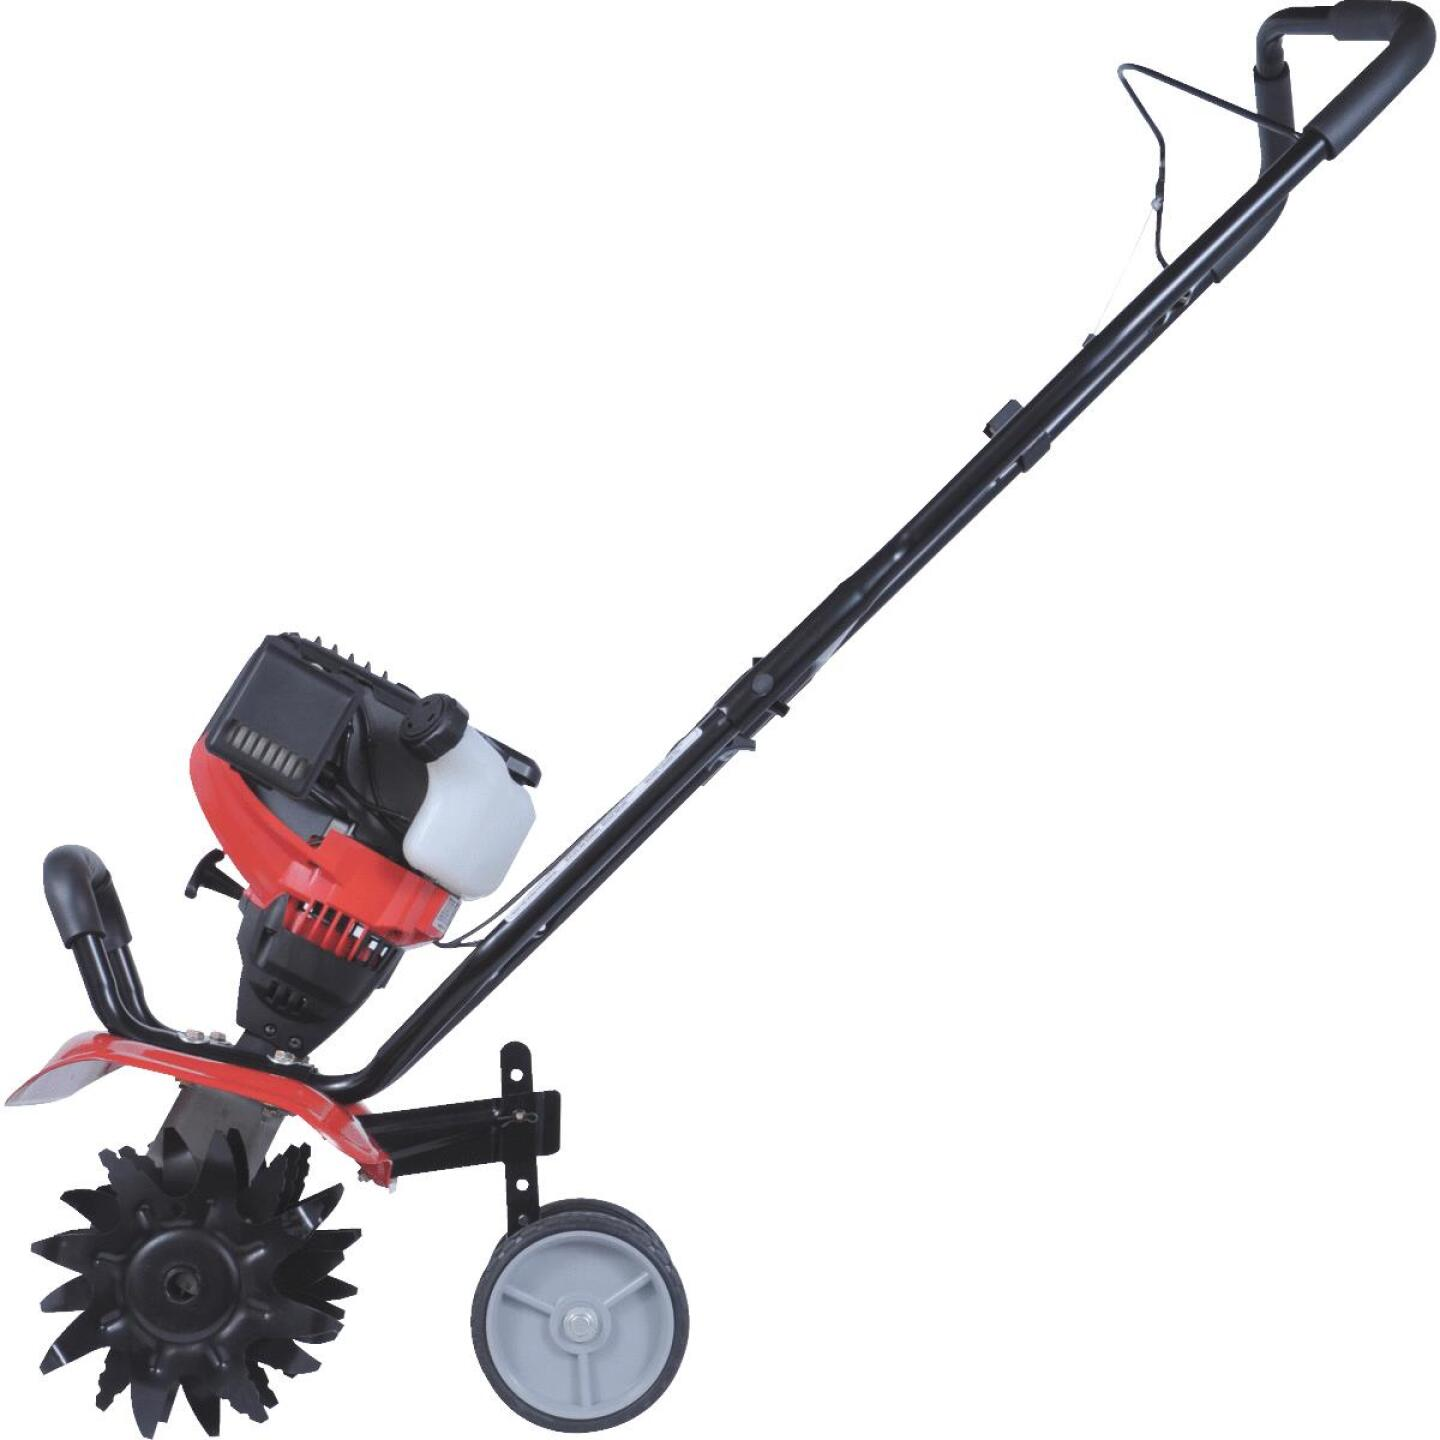 Troy-Bilt TBC304 30cc 4-Cycle Gas Cultivator Image 2